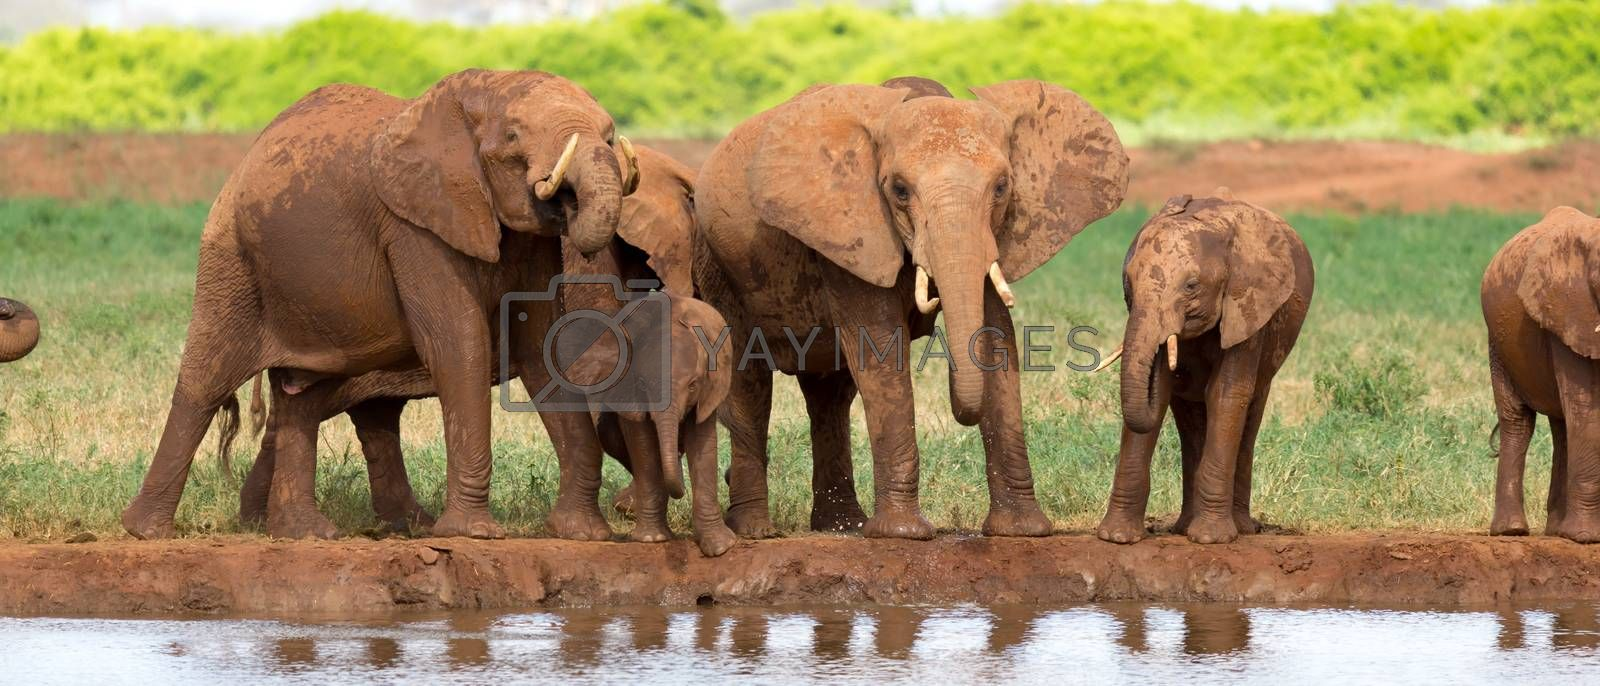 The family of red elephants at a water hole in the middle of the savannah